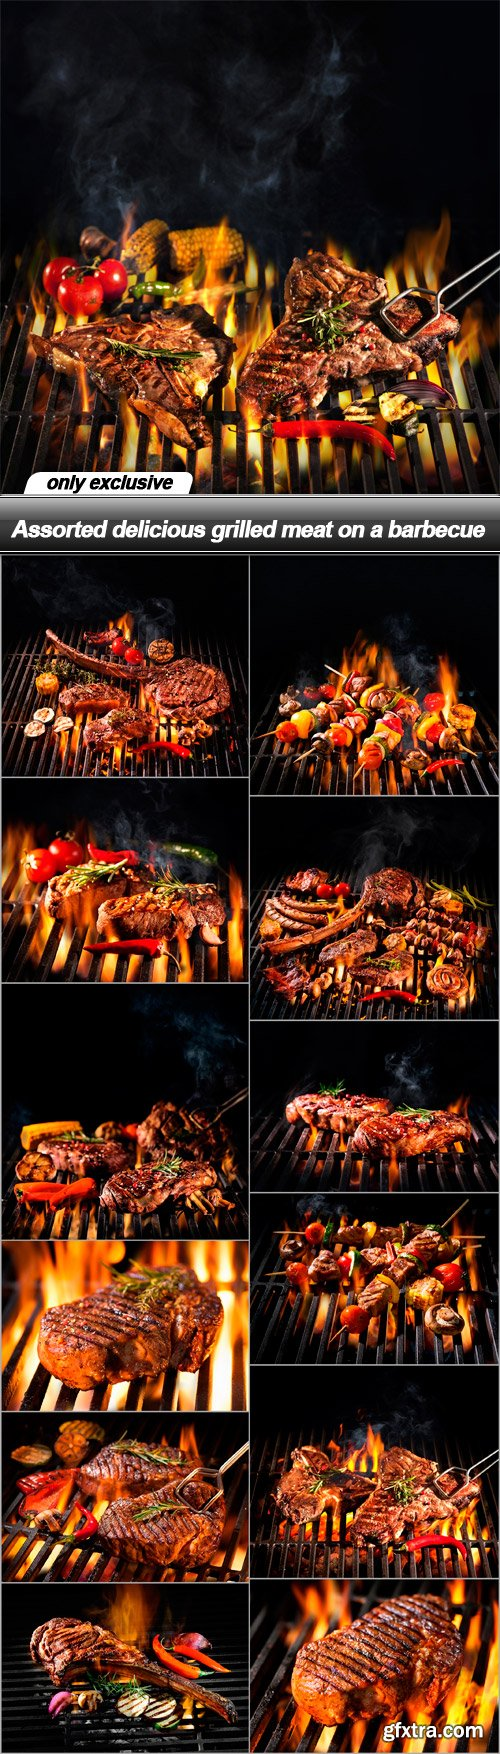 Assorted delicious grilled meat on a barbecue - 13 UHQ JPEG